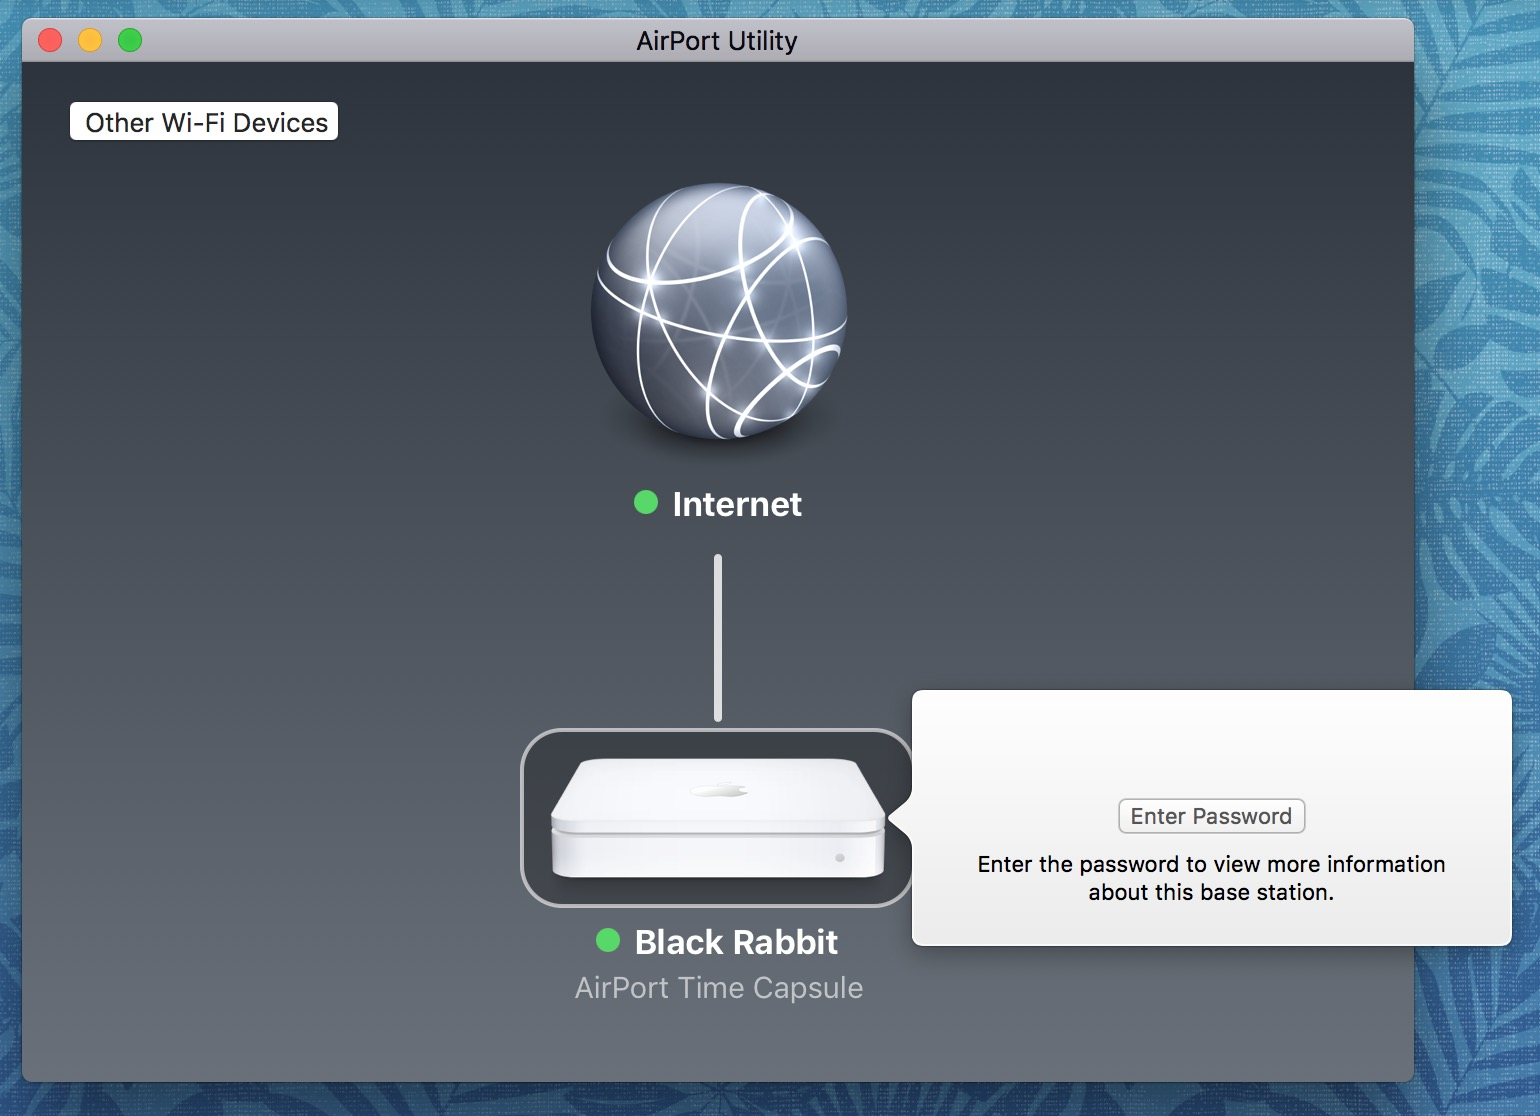 """Enter Password"" Prompt in AirPort Utility on the Mac"